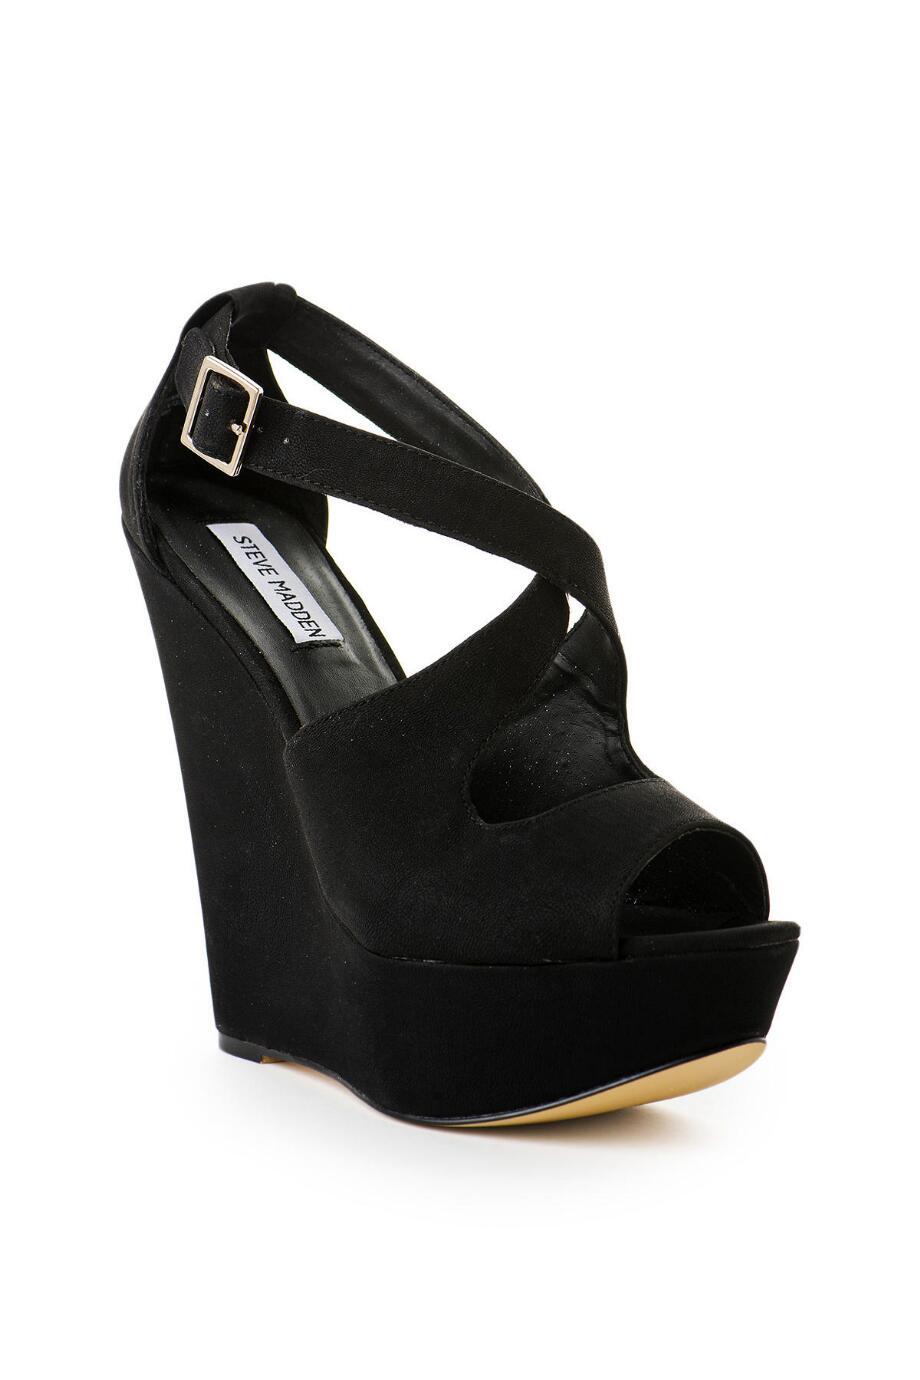 Steve Madden Xternal Wedge in Black